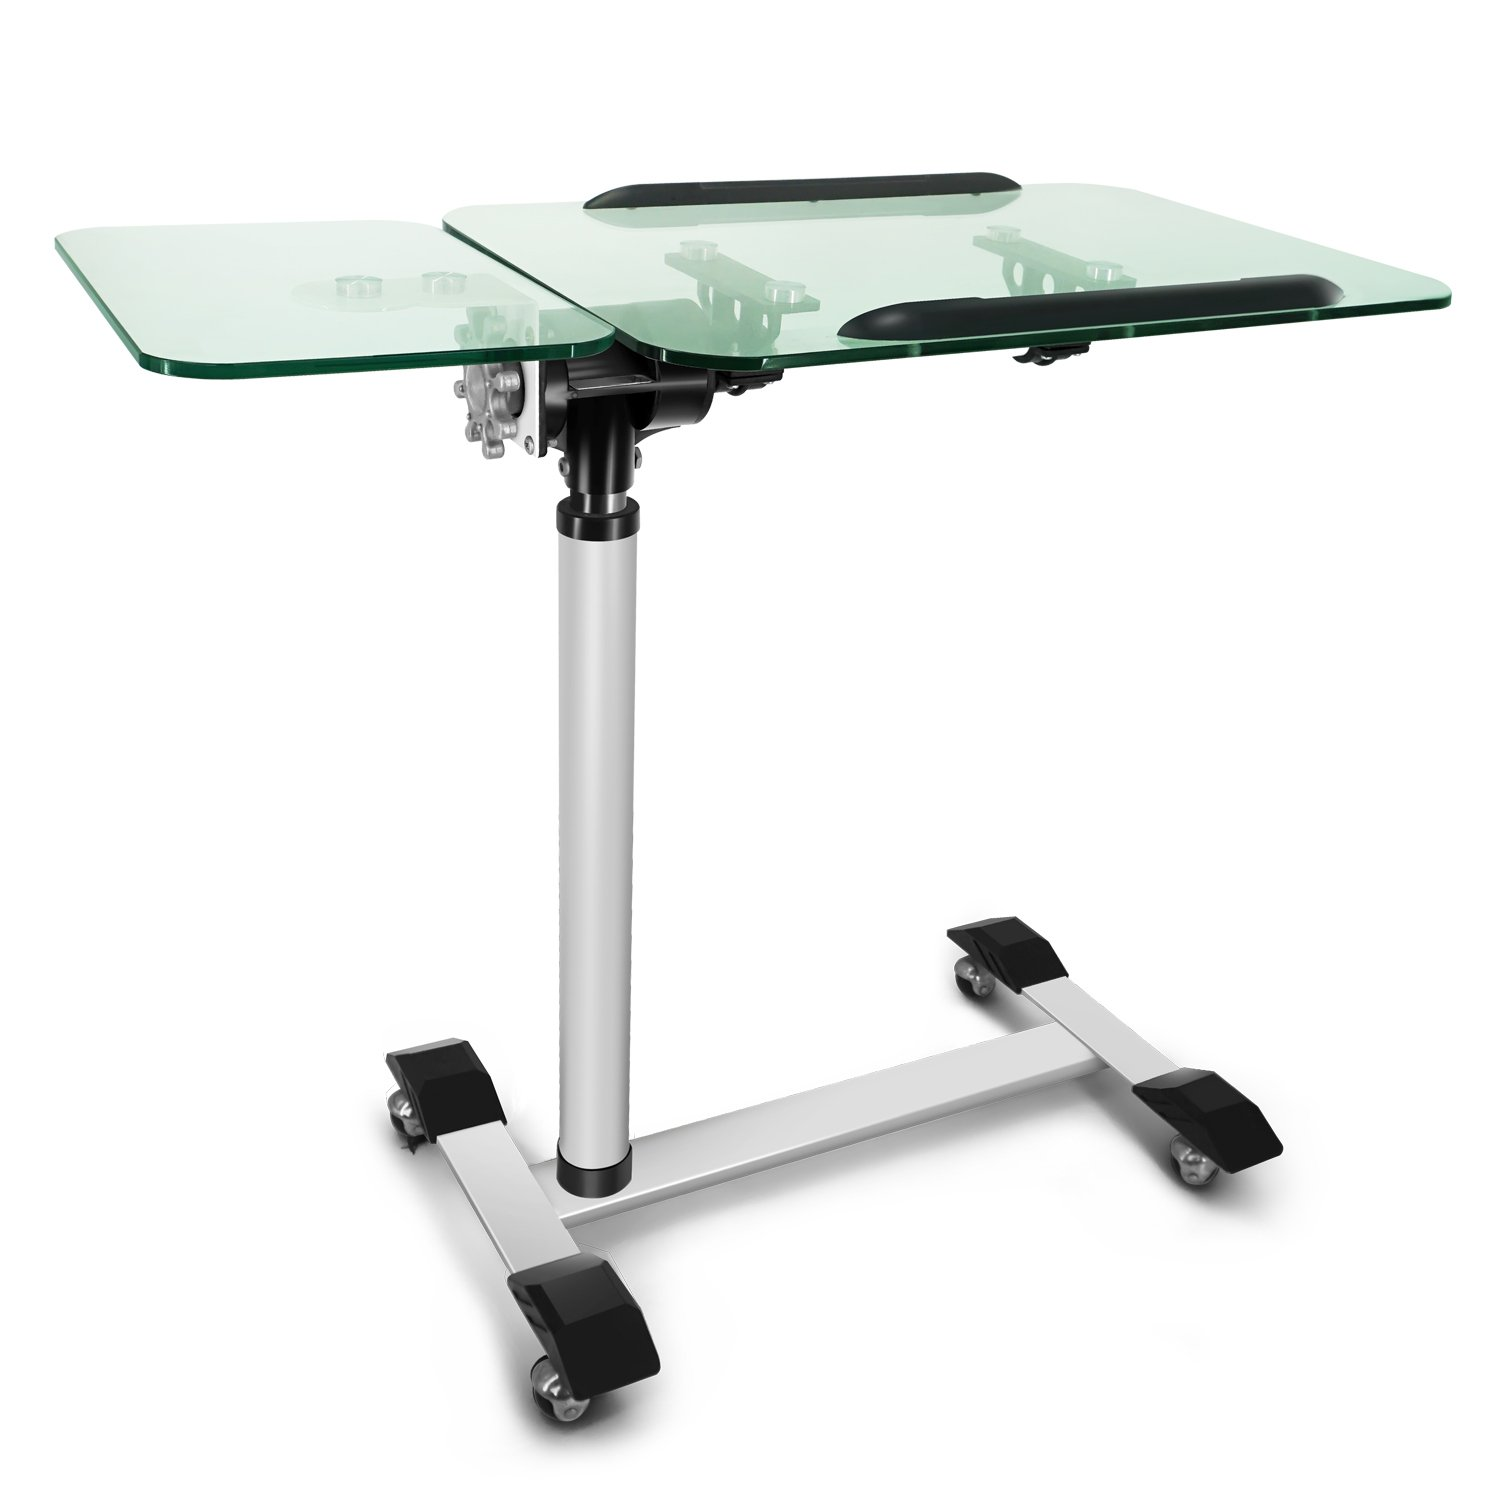 Kelligo Morden Tempered Glass Laptop Table tray, Bed Couch and Cover , Sofa Side Table Hold Home Office Nursing Table, Height Adjustable Desk With wheels and mouse pad(73-102cm)White (GLASS)